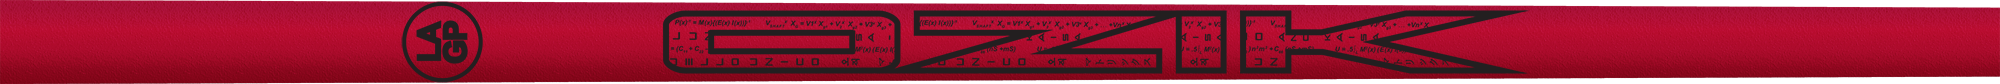 Ozik White Tie: Candy Apple Red Black Textured - Wood 40 R